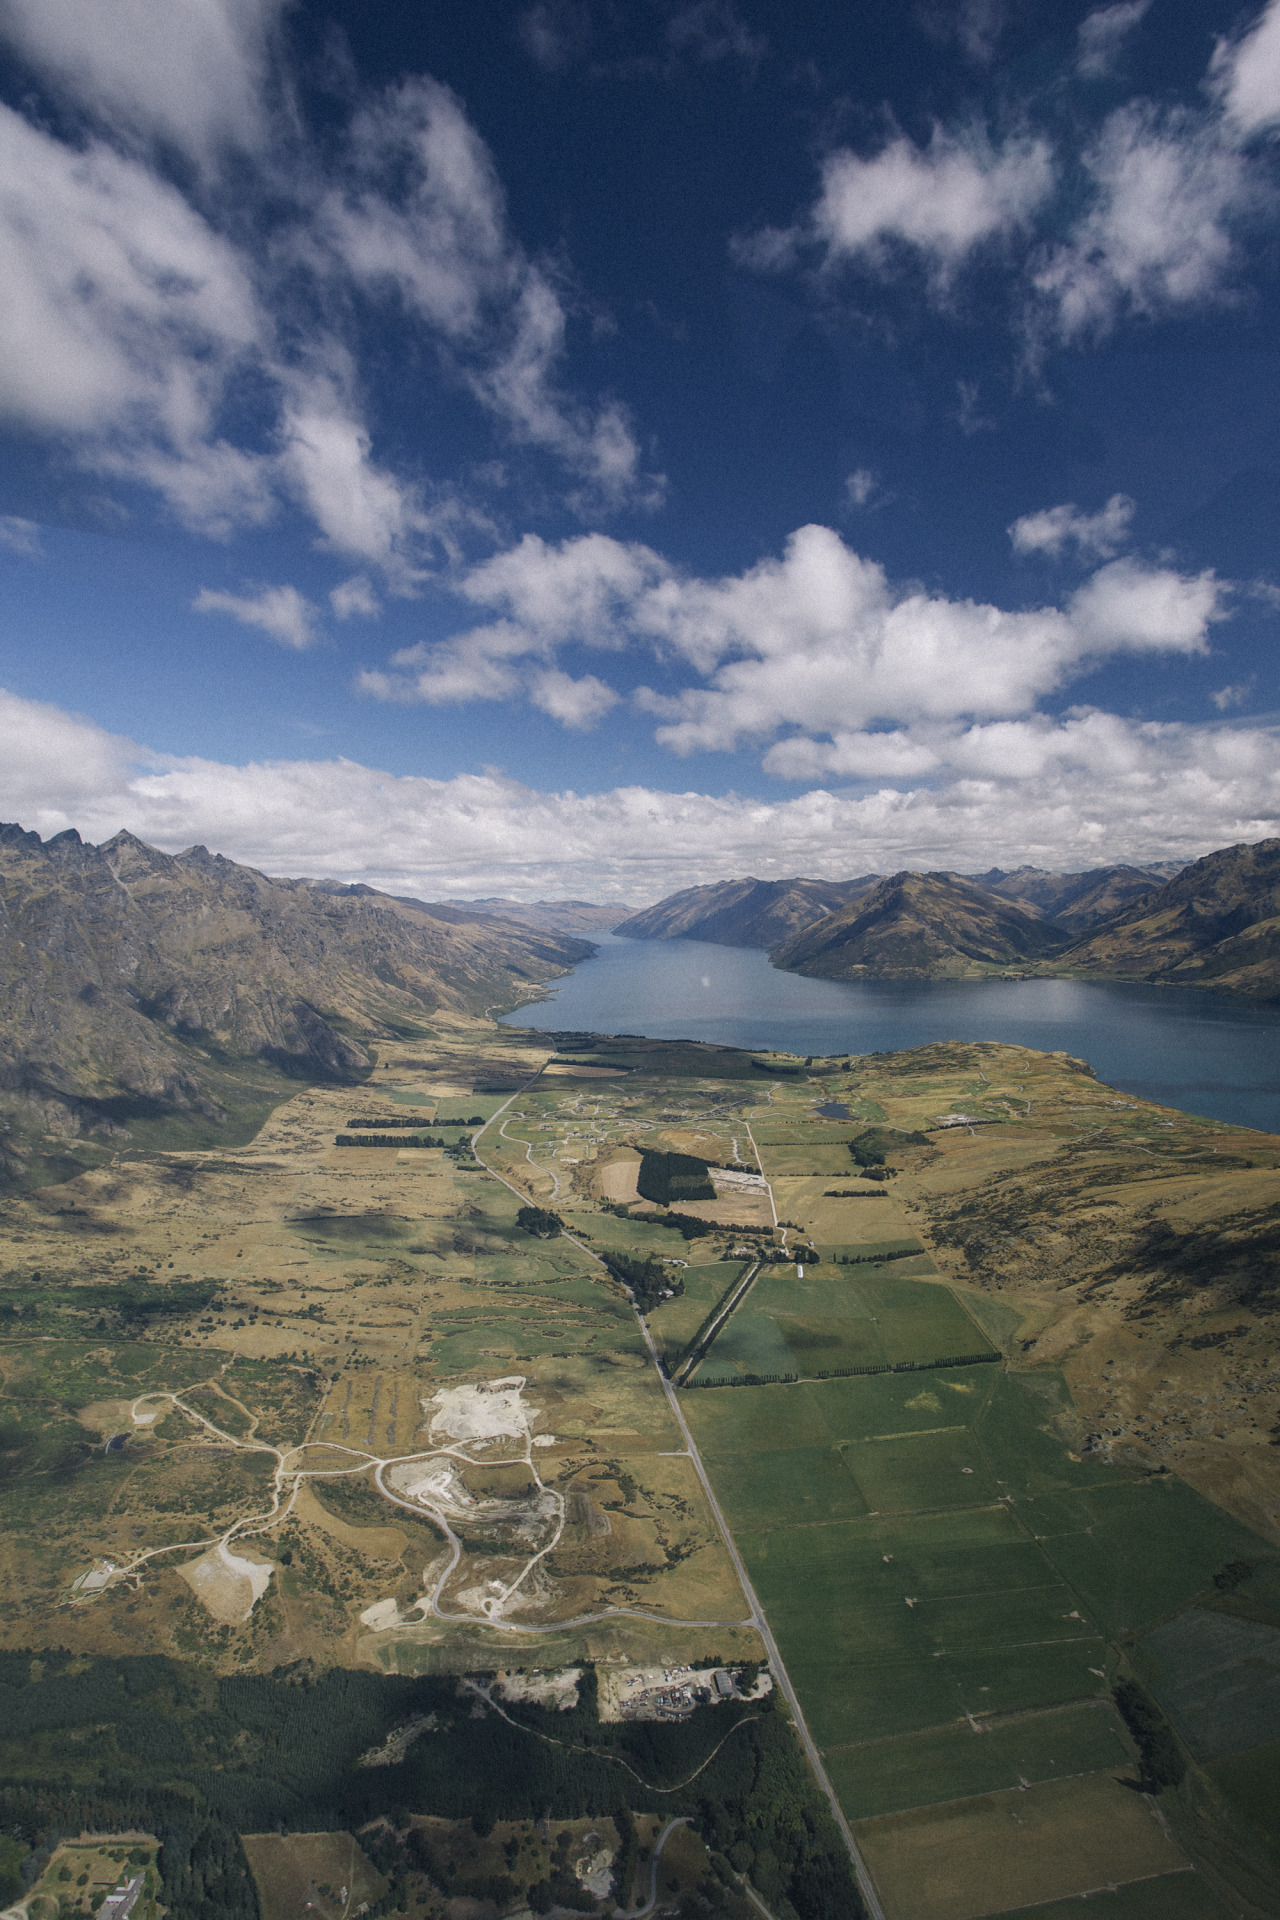 I took this when I was in a helicopter in Queenstown, New Zealand.